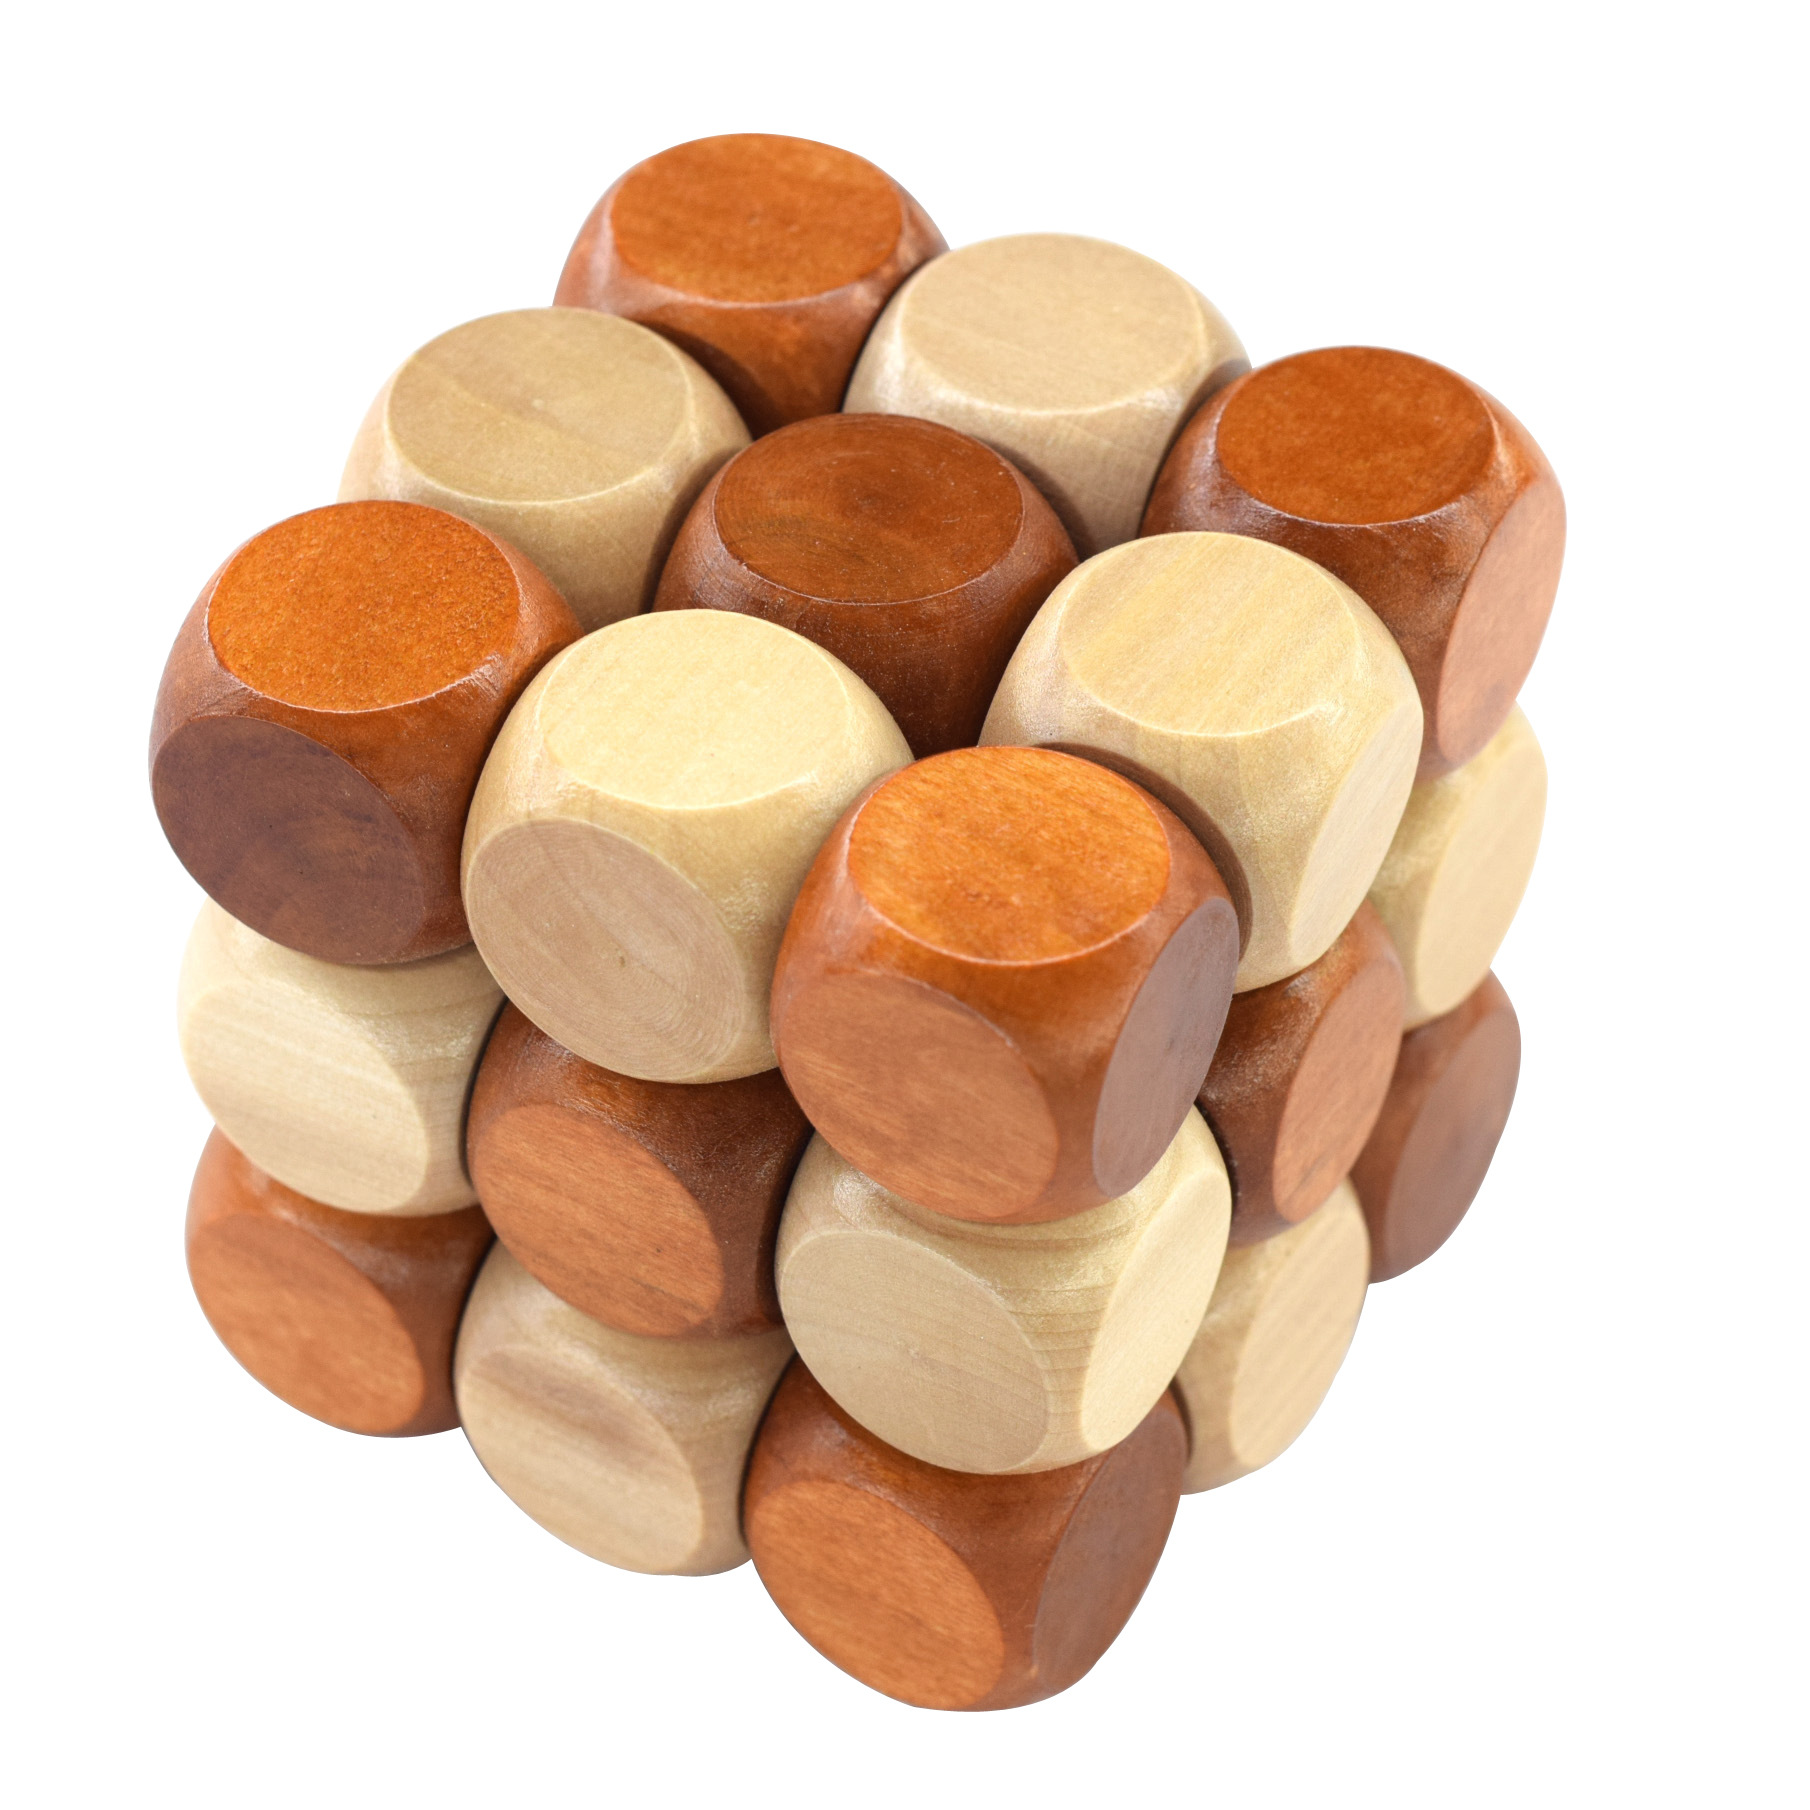 vacom 3D Wooden Puzzle Toys Educational Game For Children